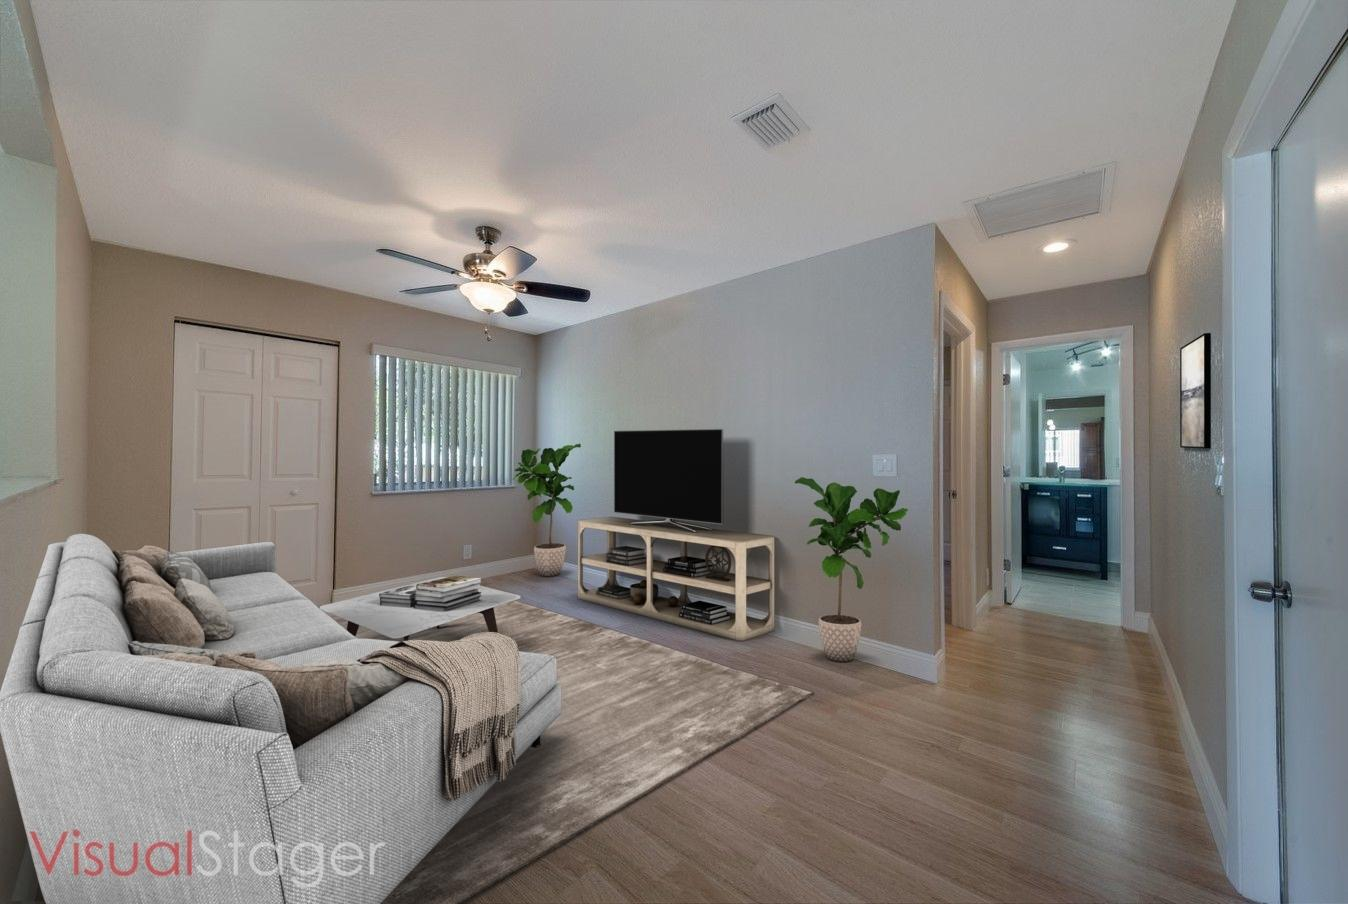 9761 Nickels Boulevard 308 Boynton Beach, FL 33436 small photo 25